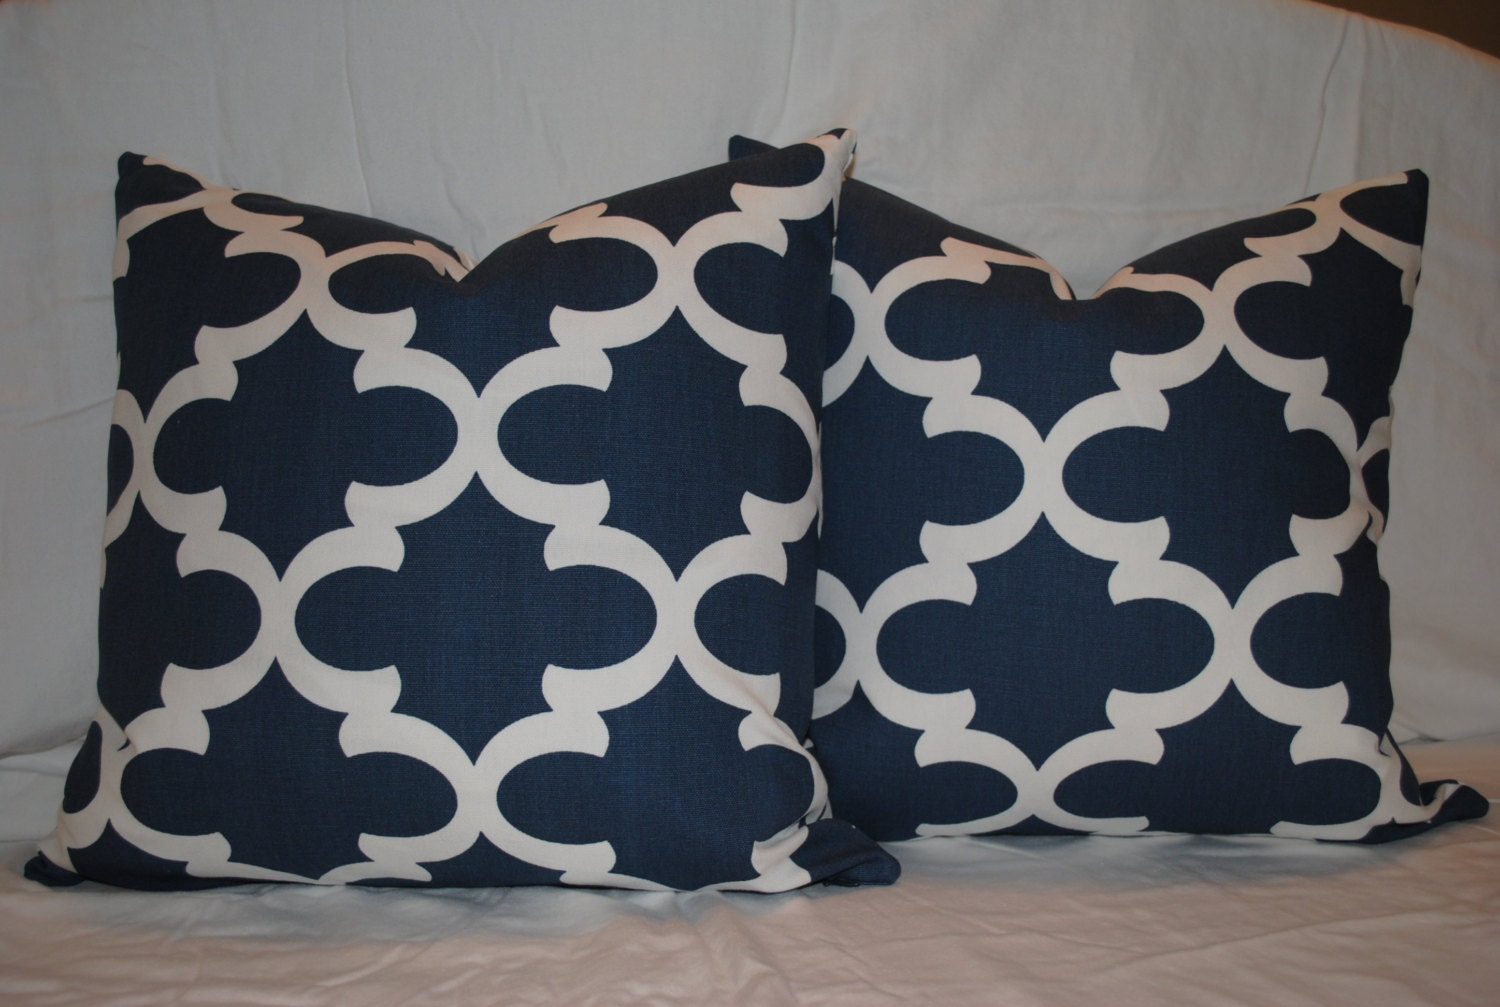 Throw Pillows For Navy Blue Couch : Couch Pillows Navy Blue Decorative Throw Pillows Accent